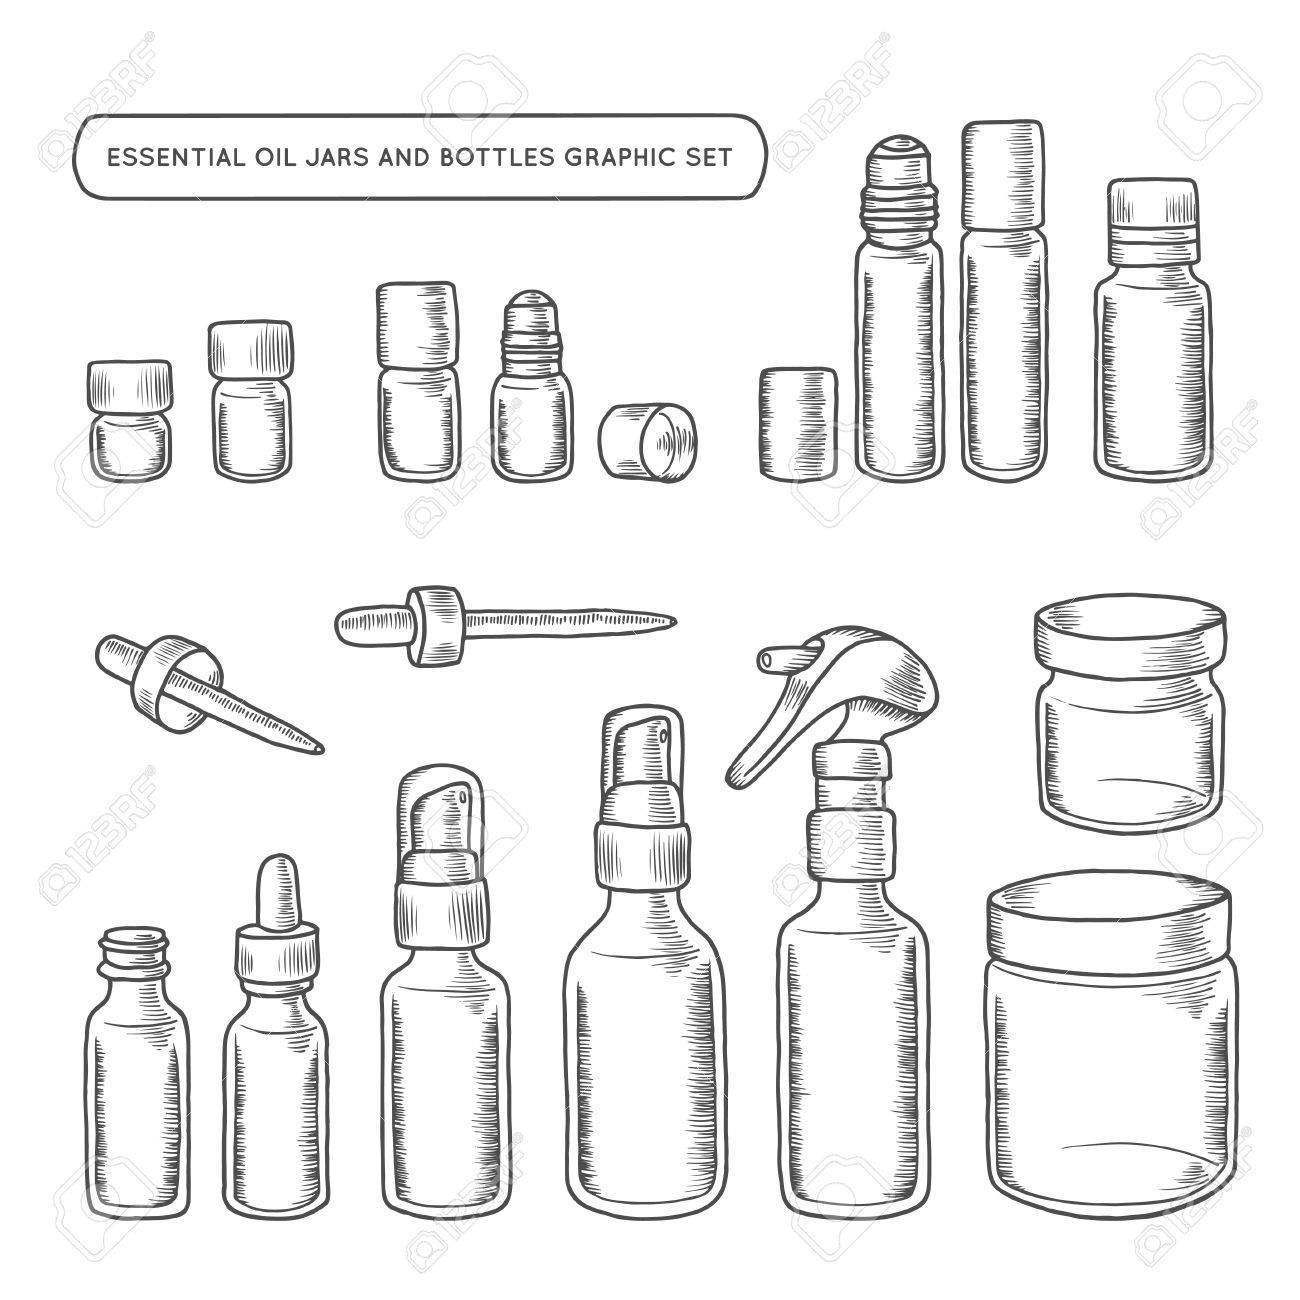 Perfume in glass pot stock photos royalty free business images essential oil jars and bottles hand drawn graphic set design elements for different decoration needs biocorpaavc Gallery